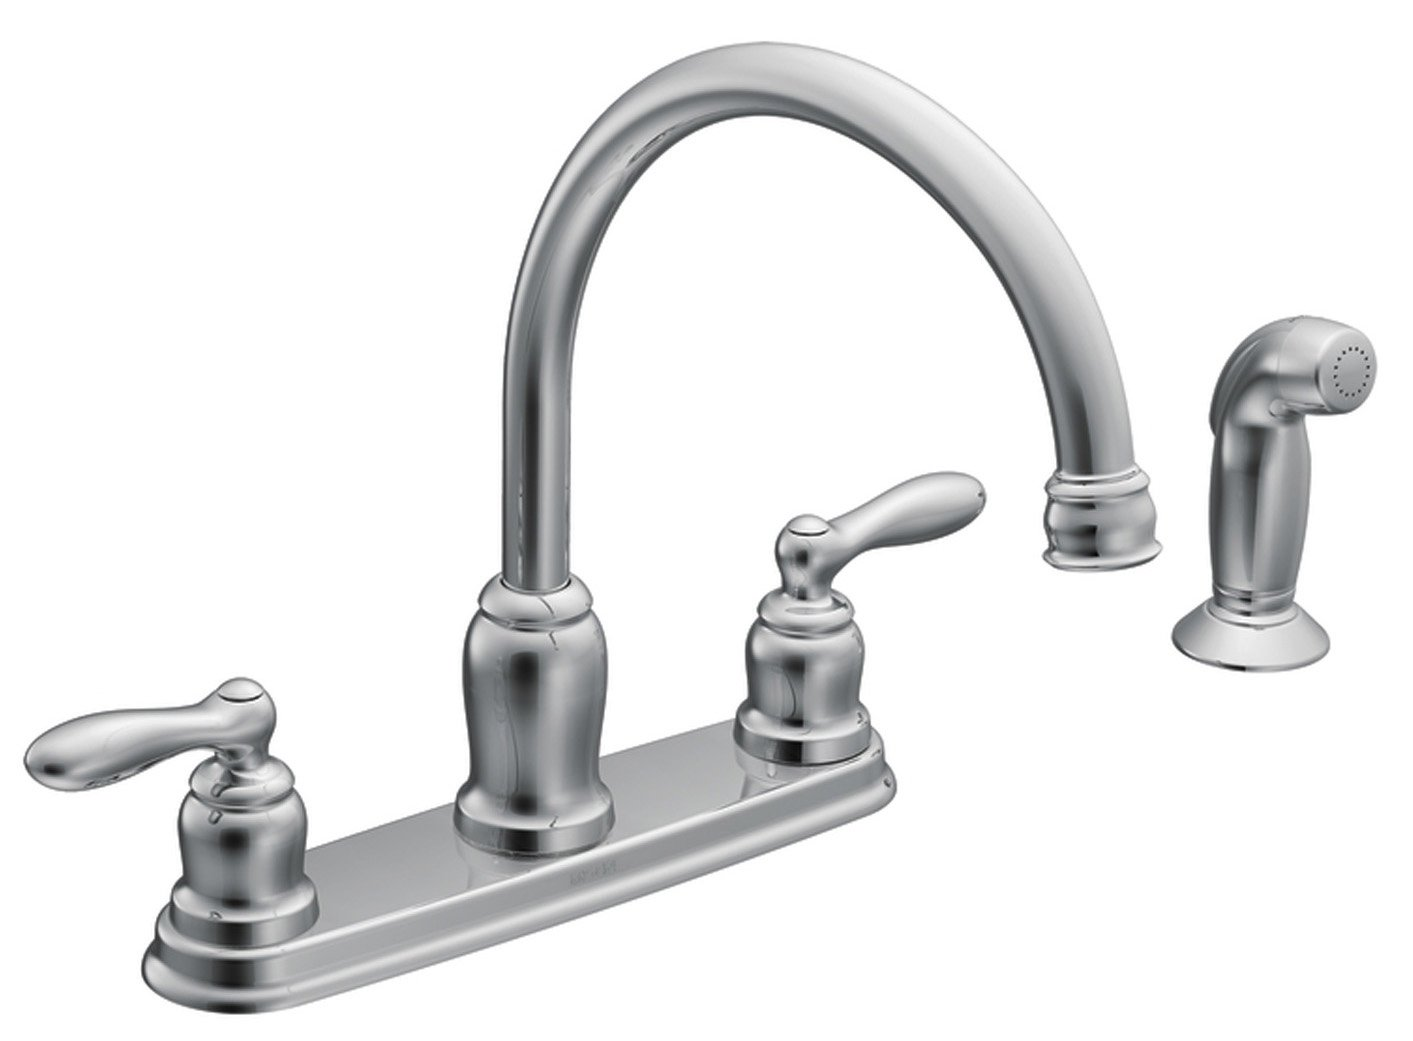 Amazon.com: Moen CA87888 High Arc Kitchen Faucet From The Caldwell  Collection, Chrome: MOEN: Home Improvement